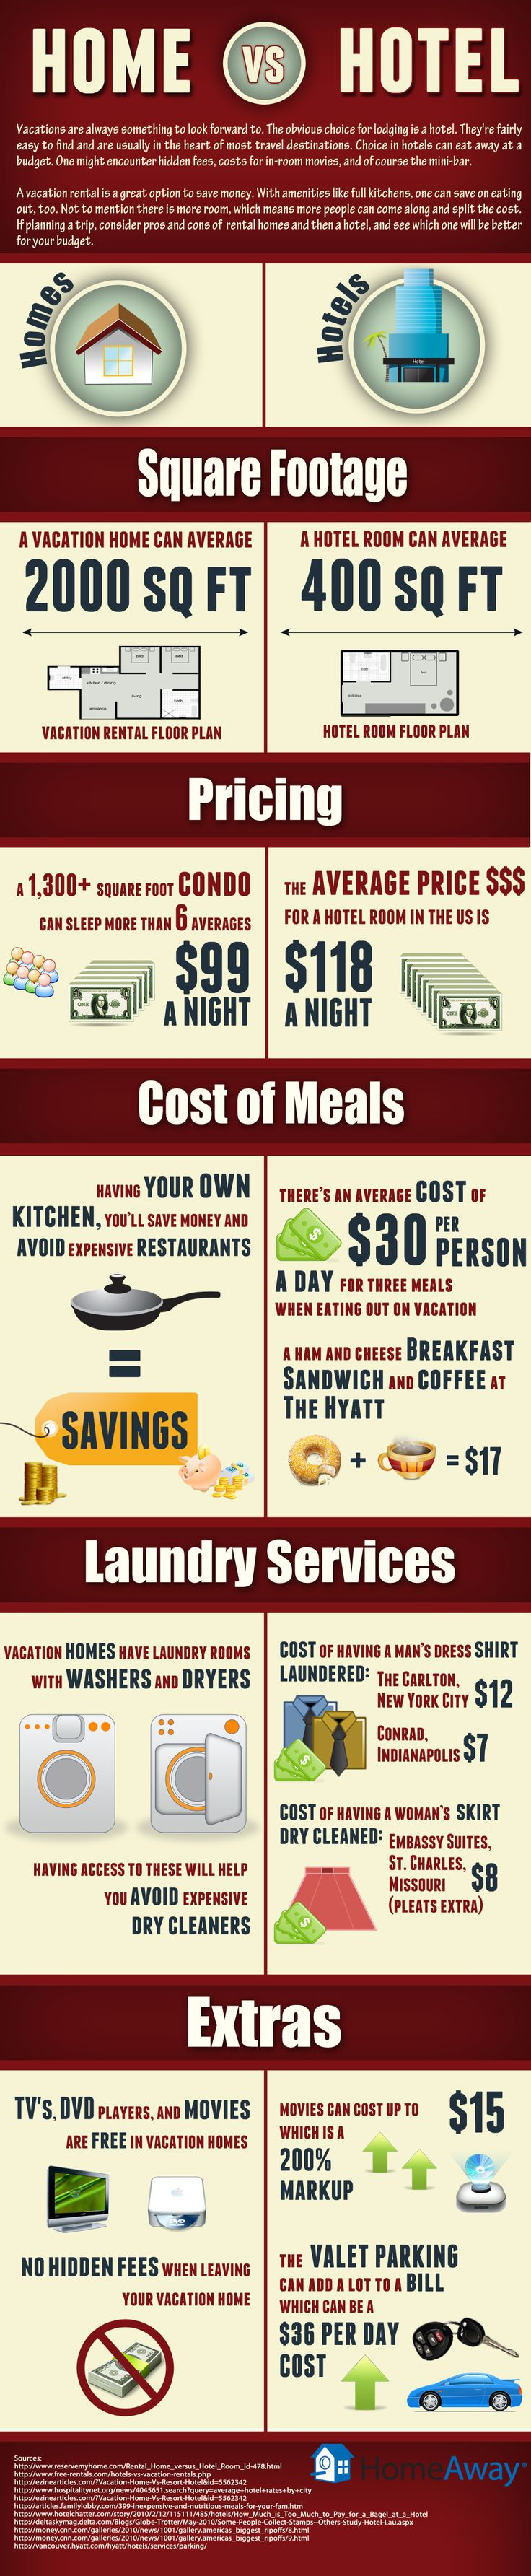 vacation rental homes versus hotel comparison infographic from HomeAway.com